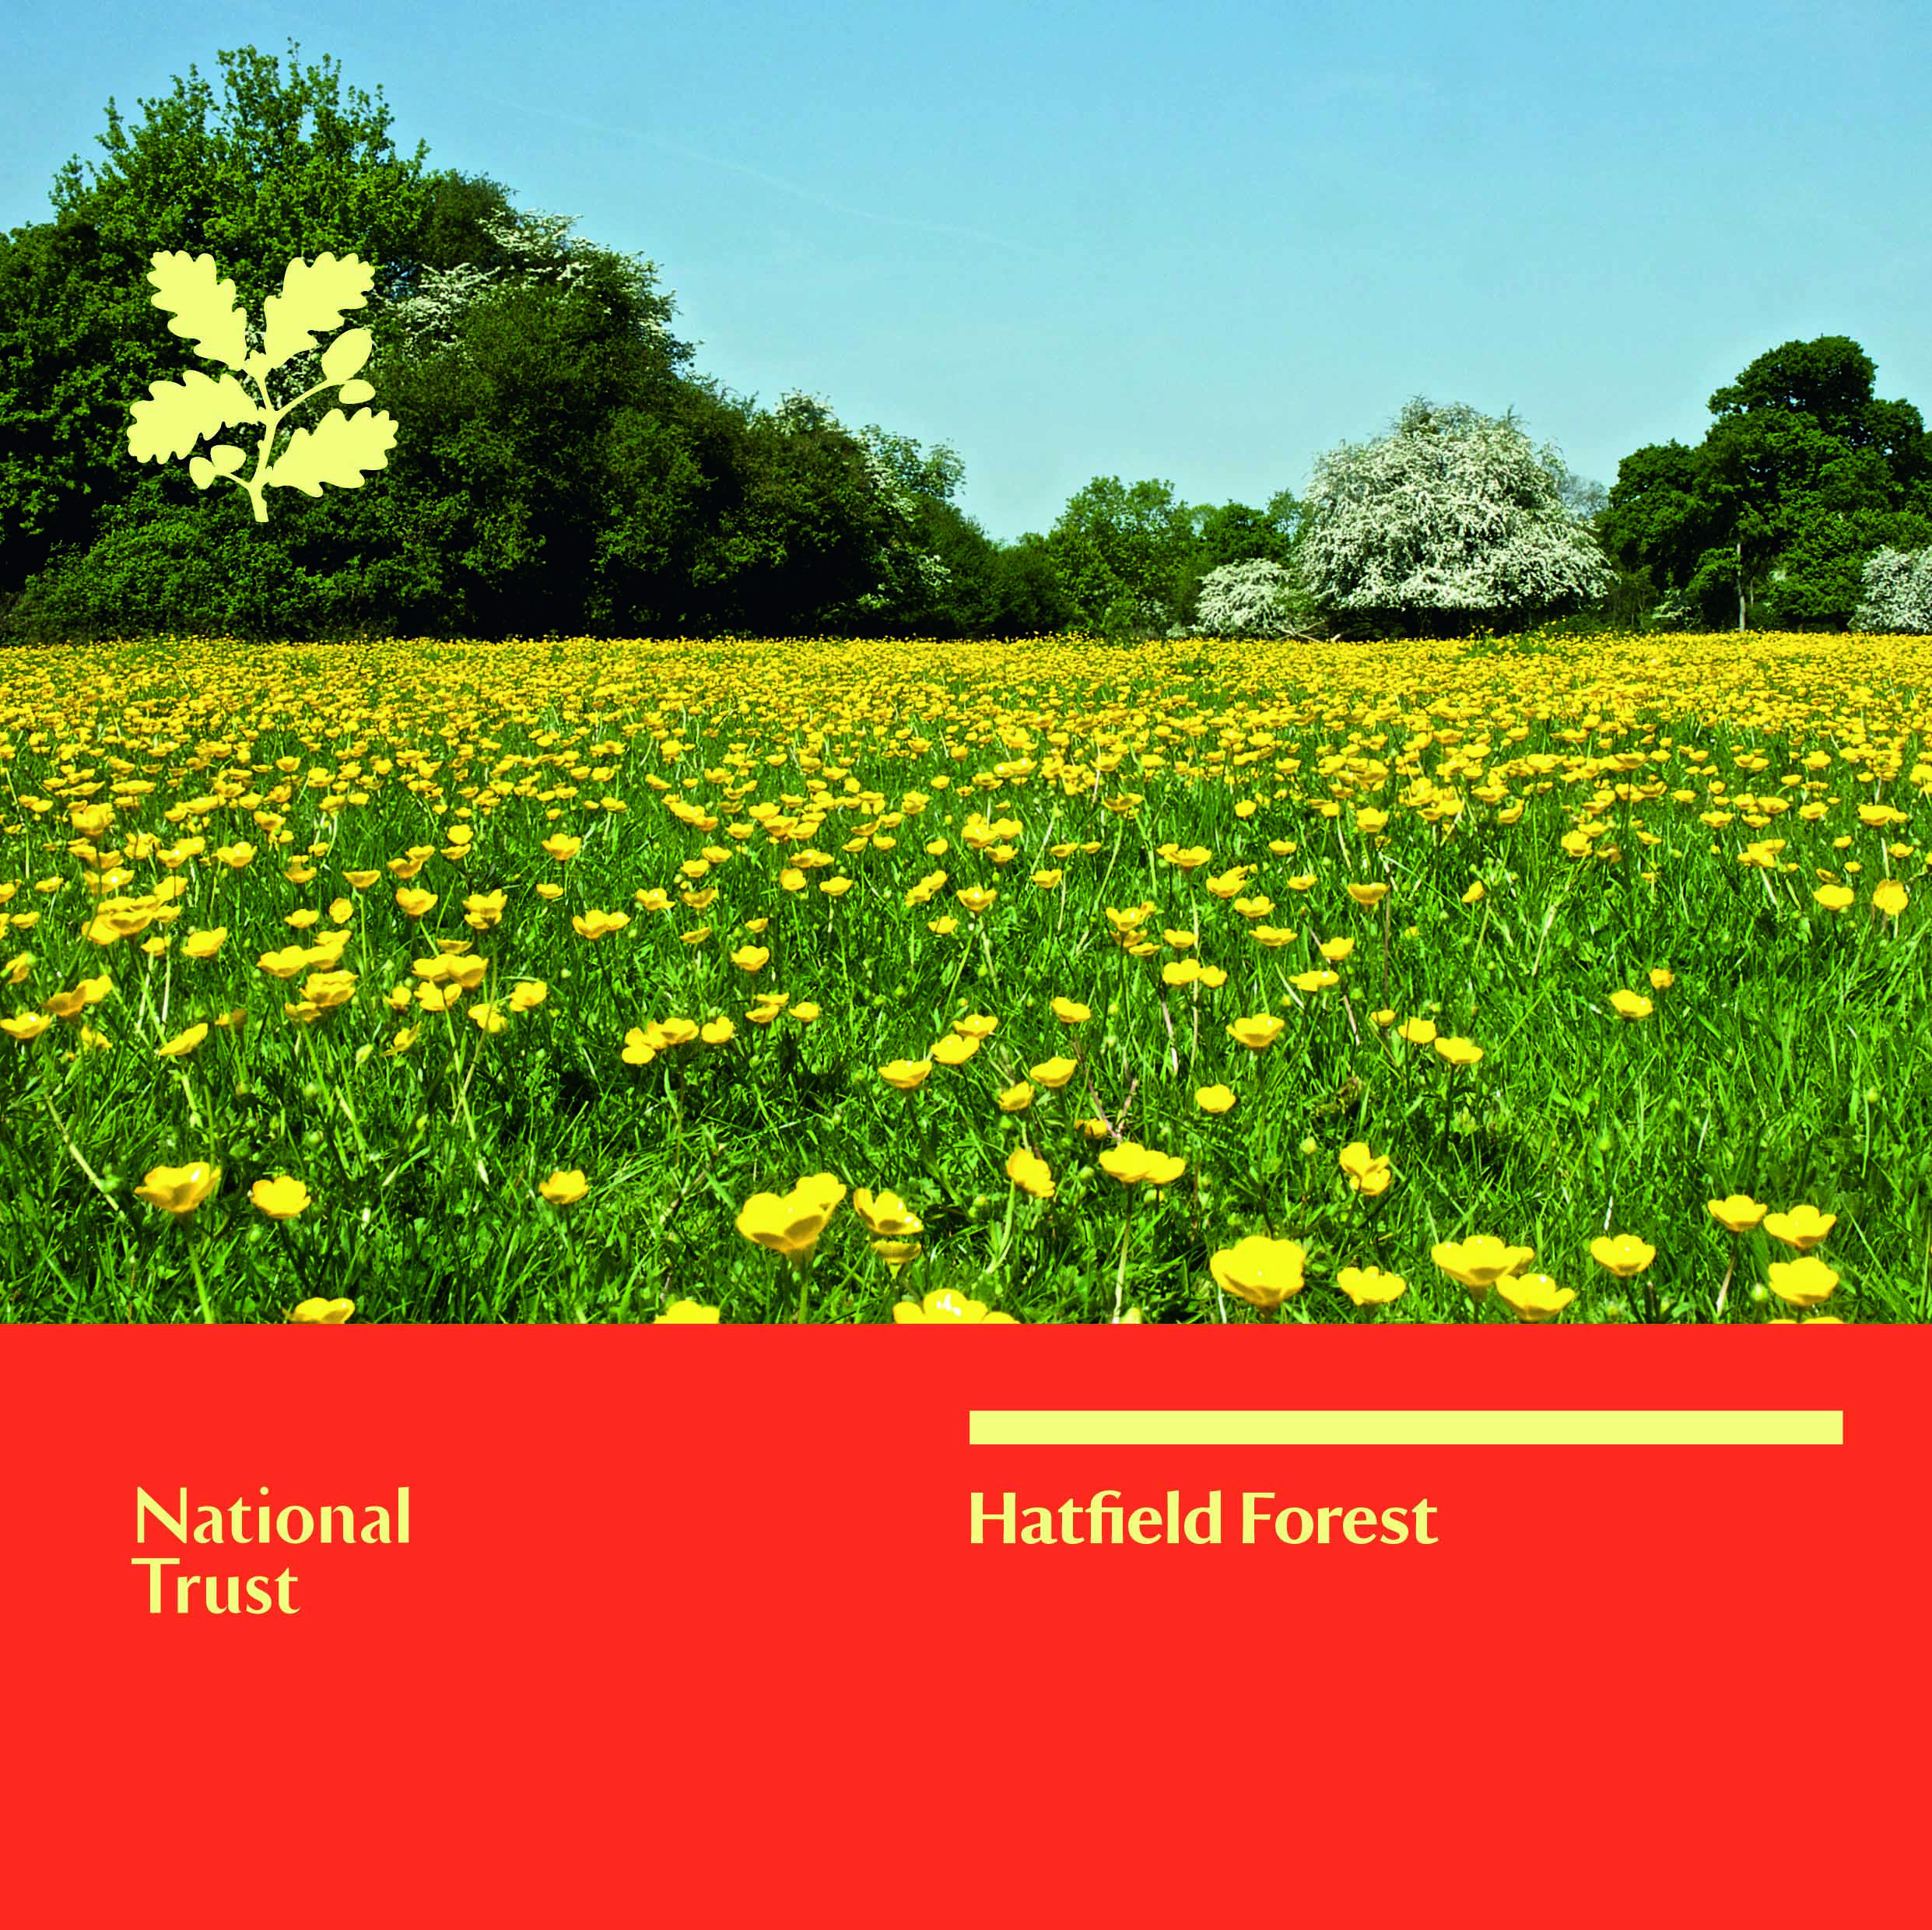 Hatfield Forest